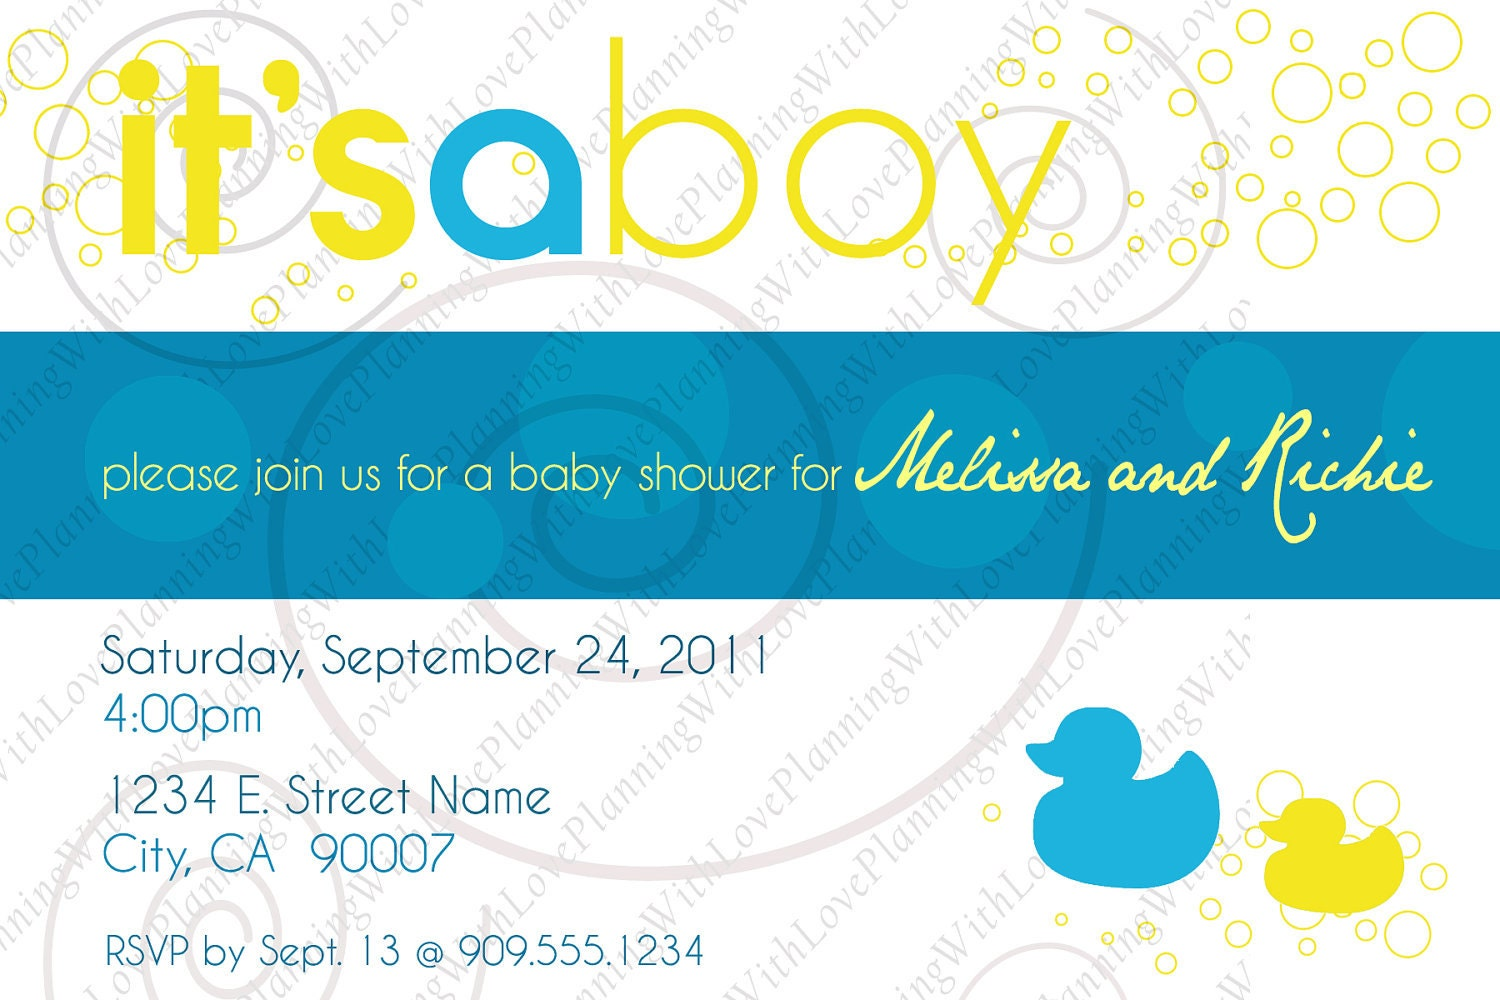 rubber ducky baby shower invitation by planningwithlove on etsy